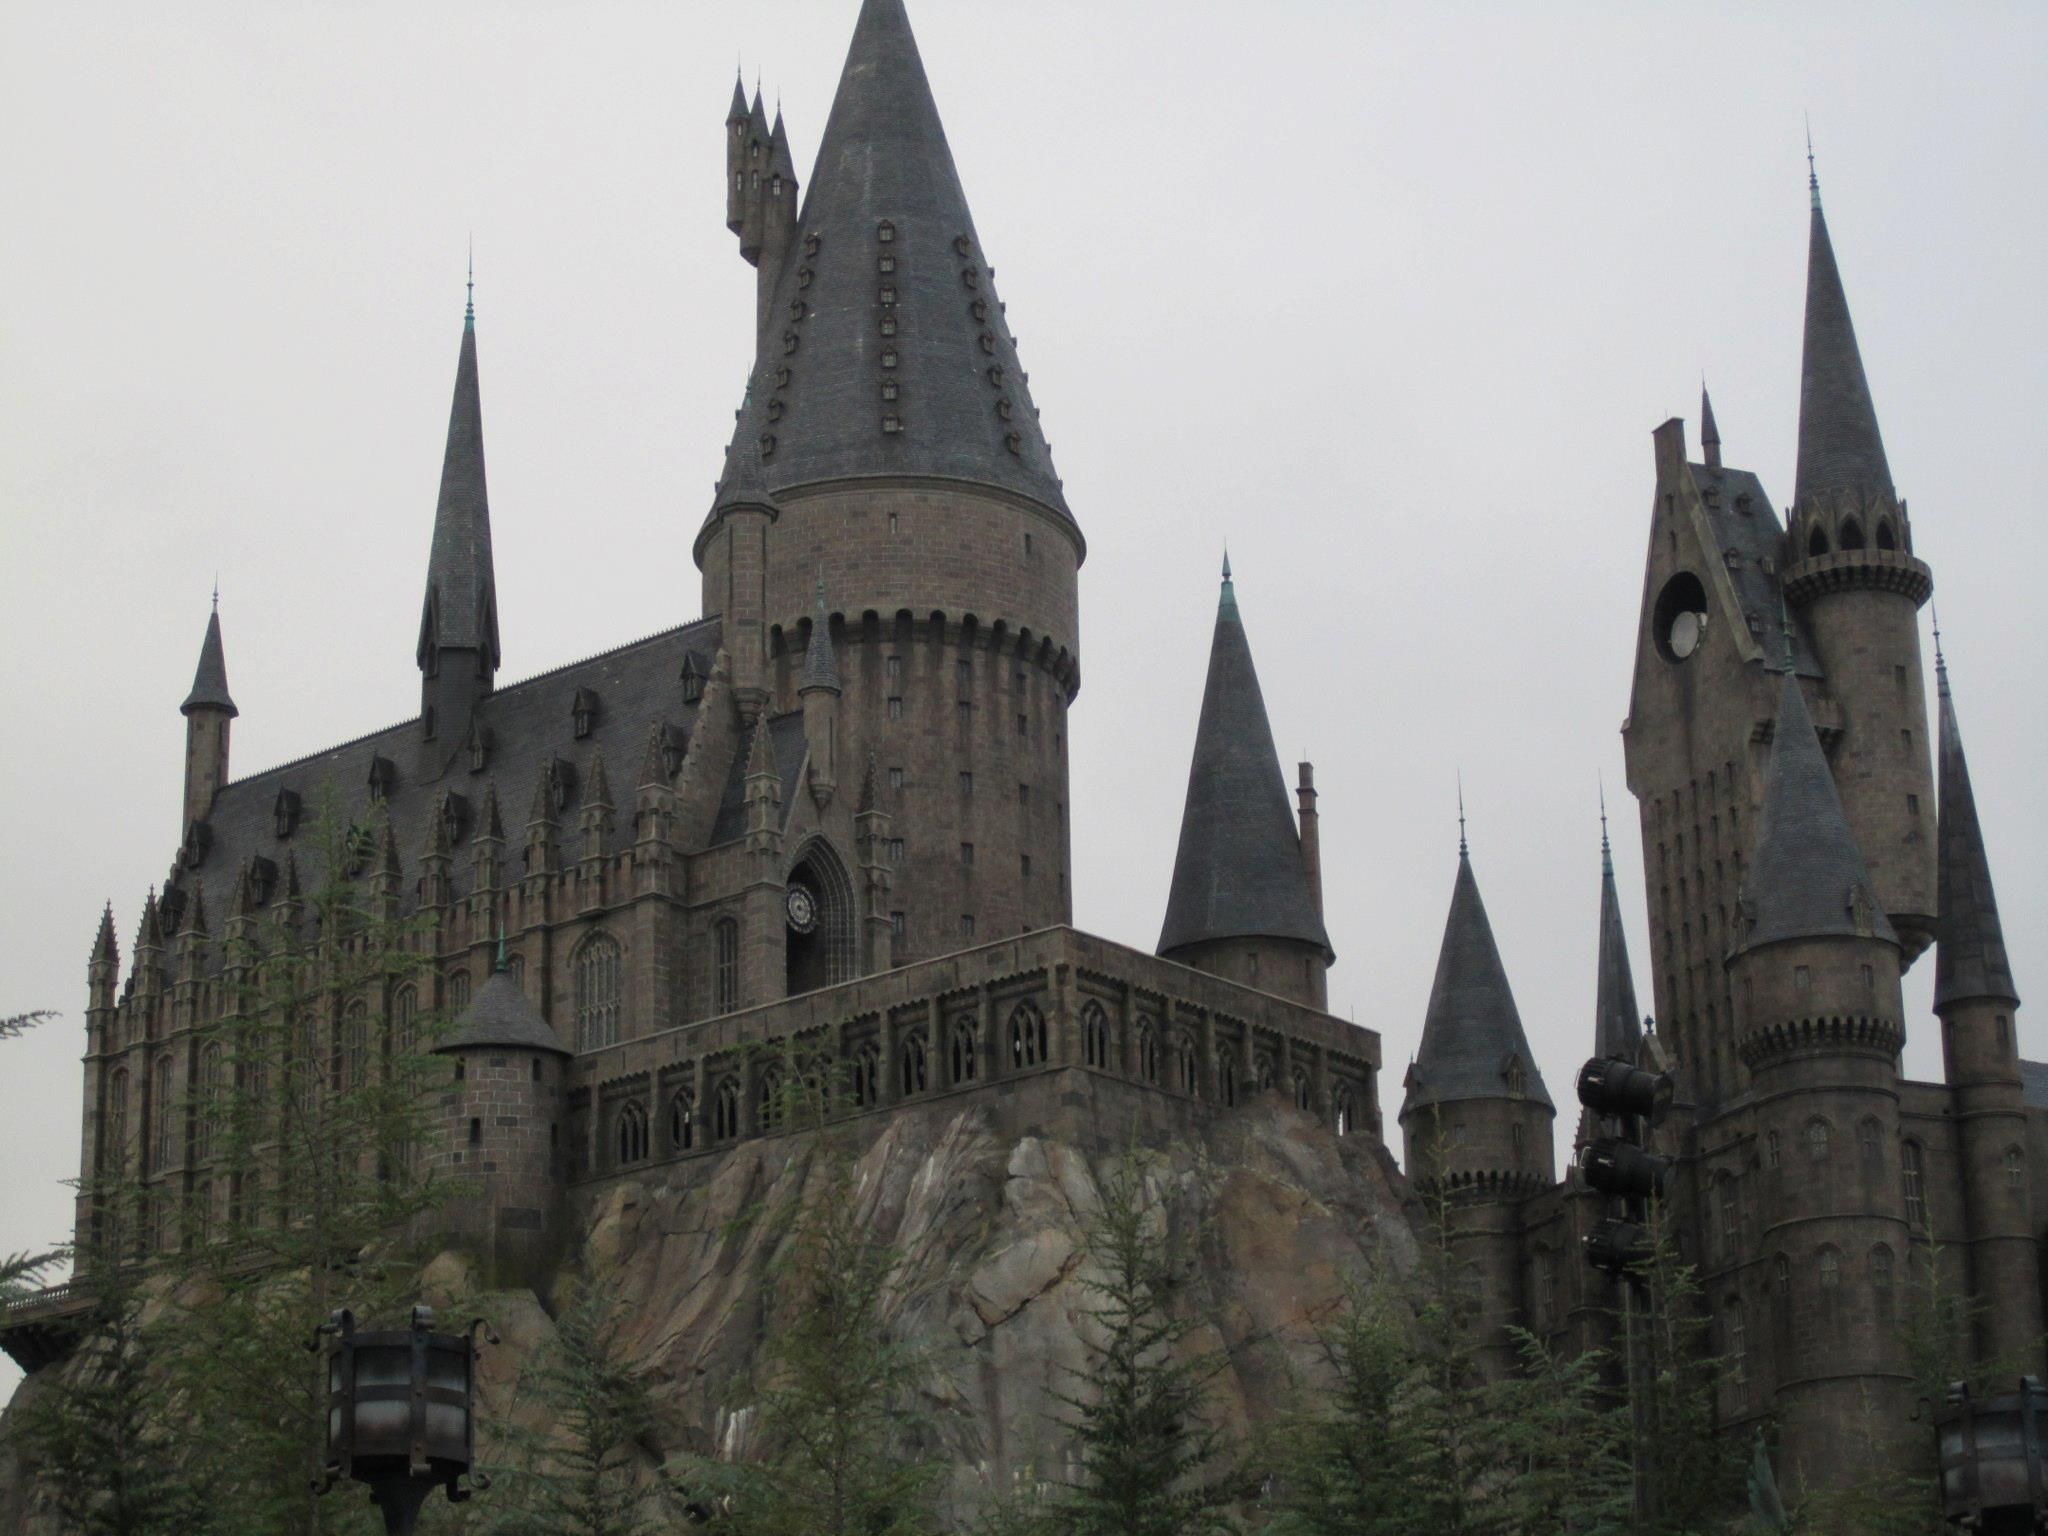 Hogwarts in the Universal Orlando Park.